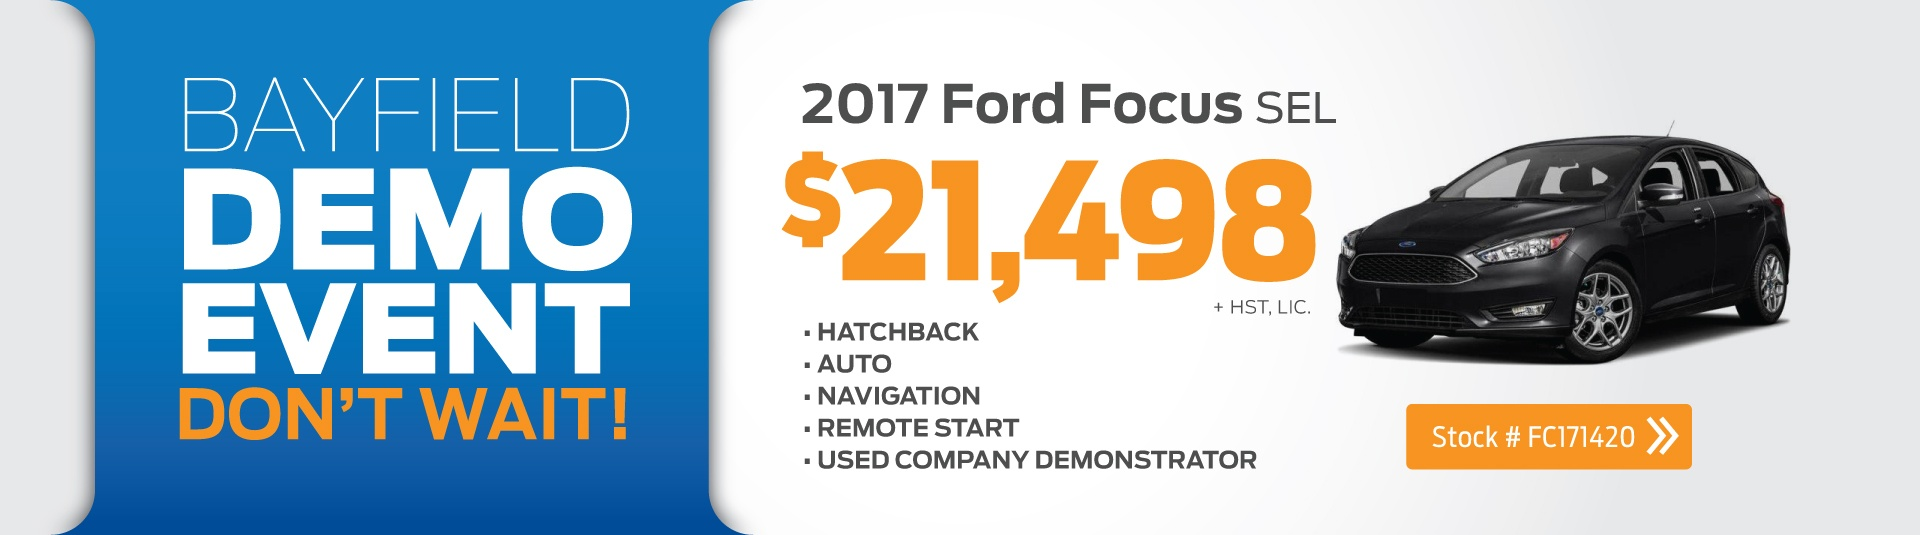 2017 Ford Focus Demo Deal